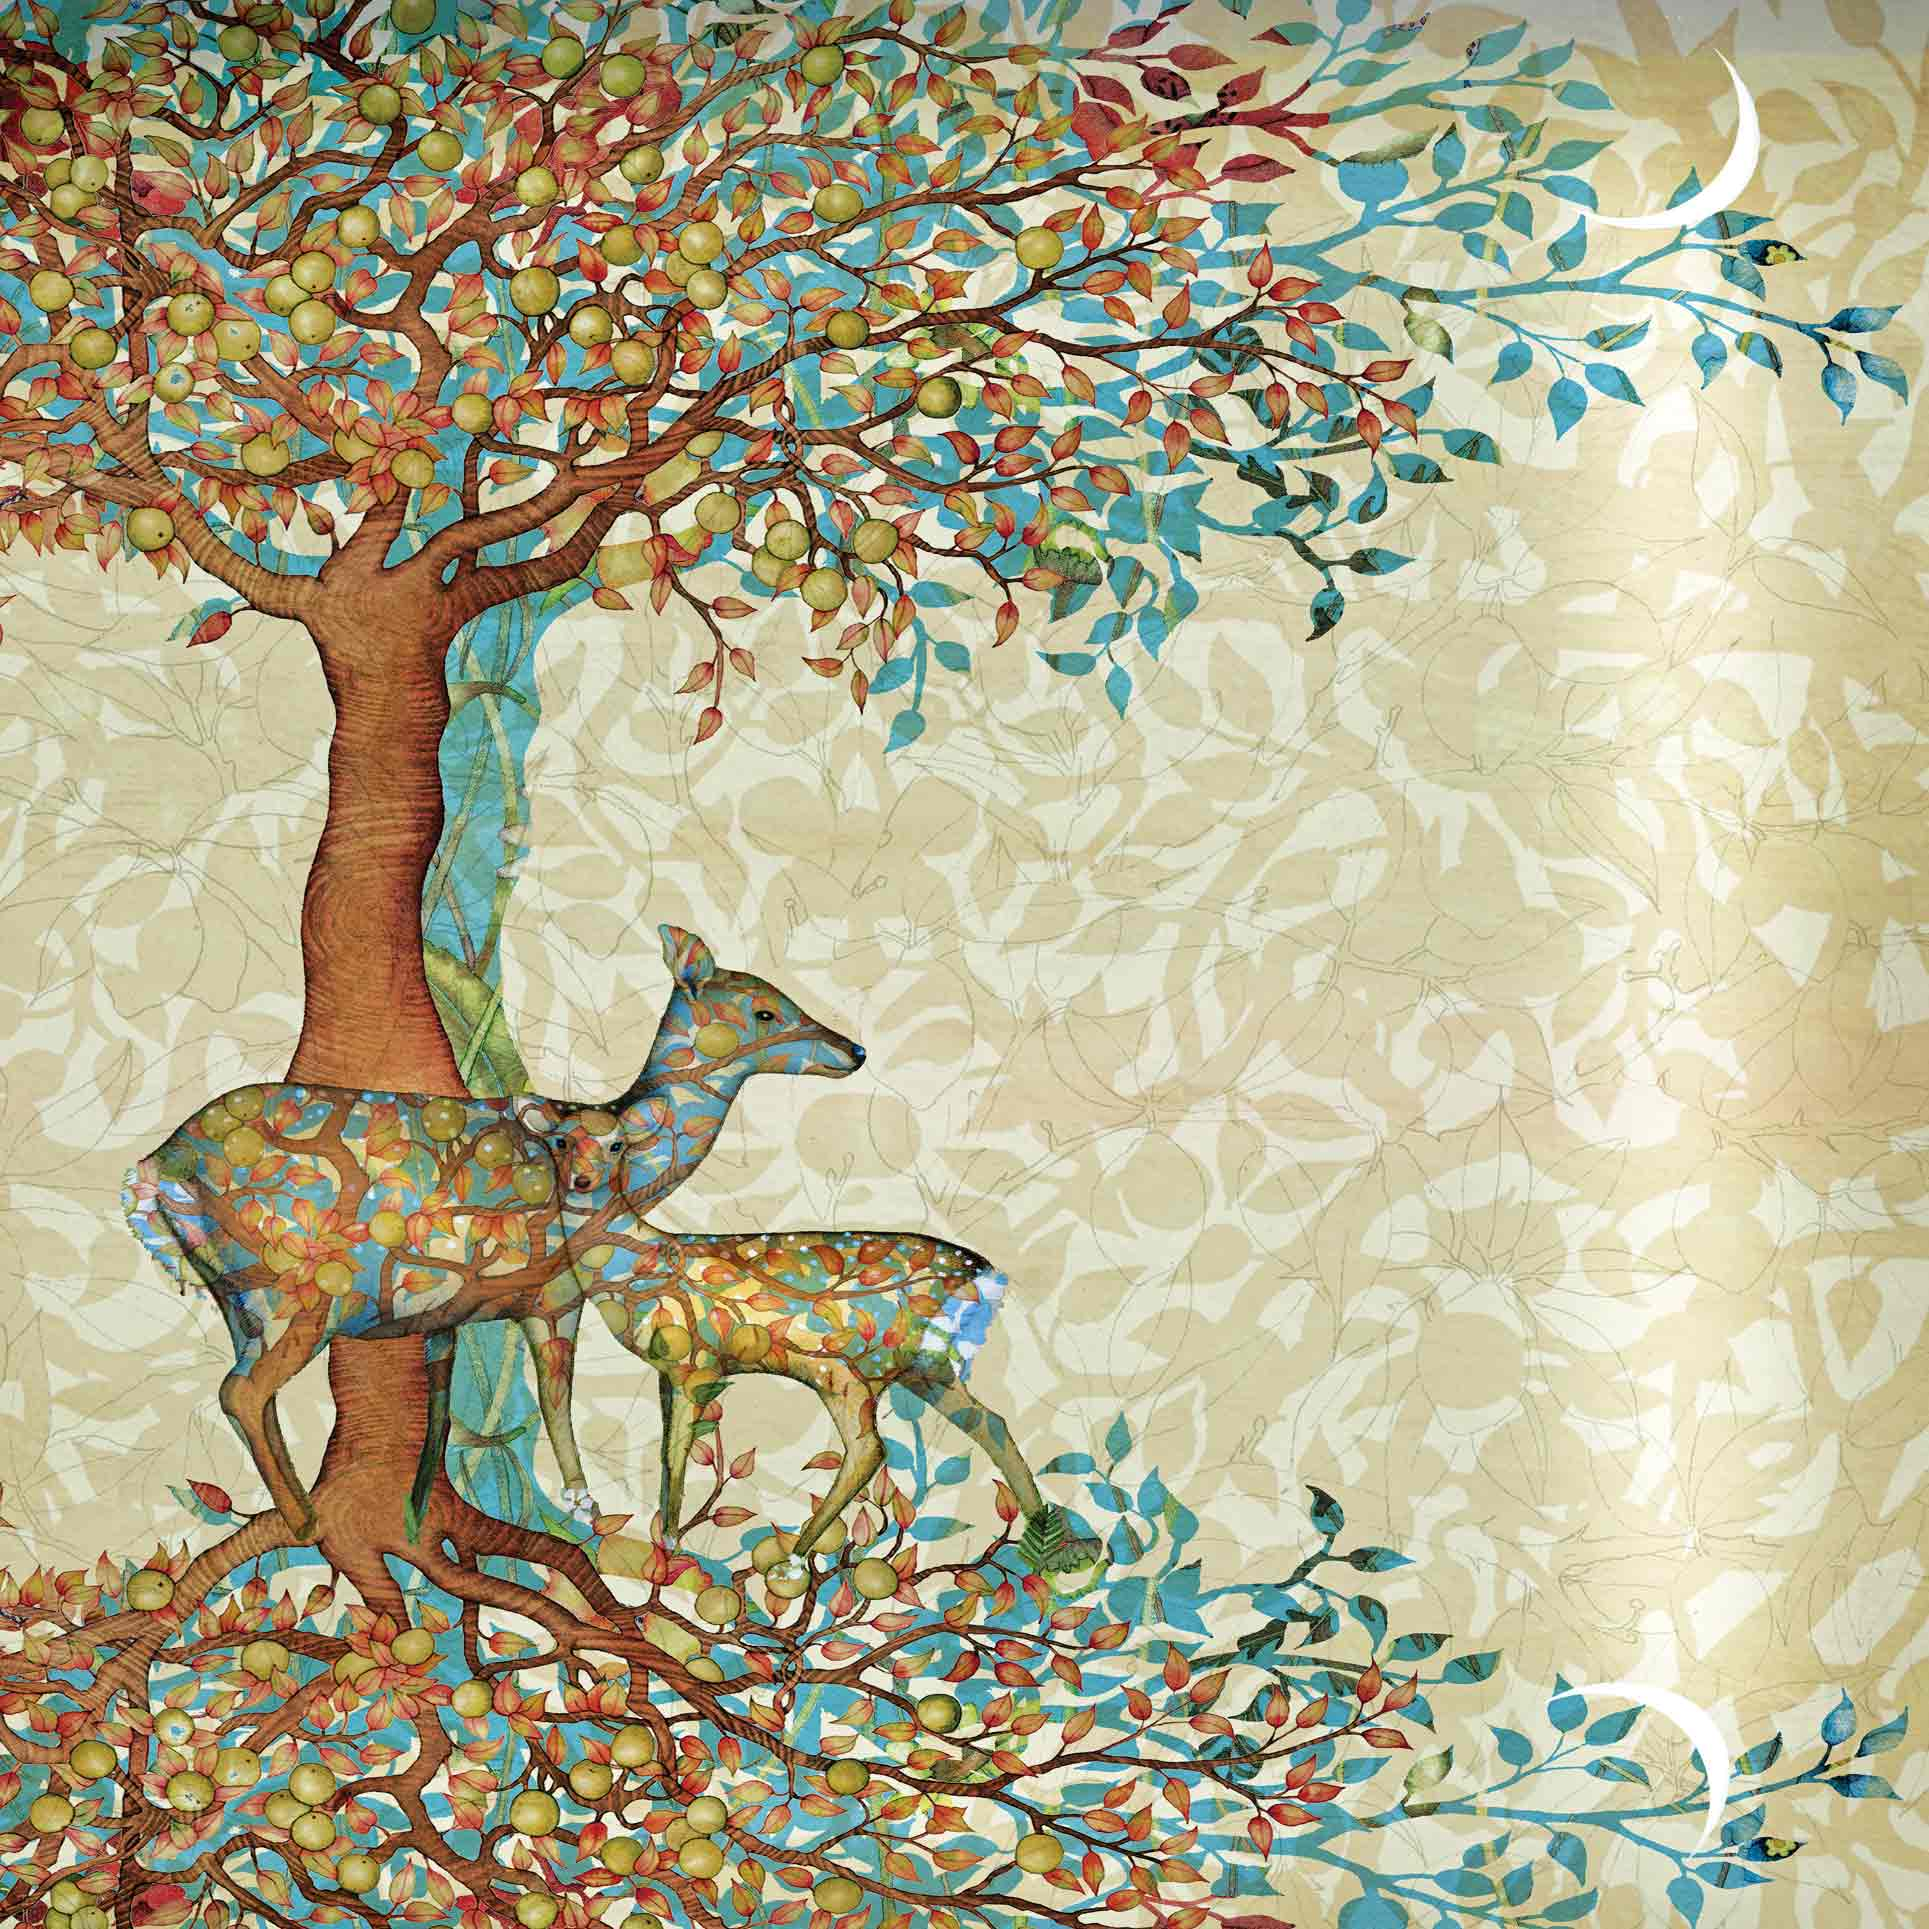 Art Greeting Card by Kate Green, Deer and Fawn, Digital Collage, Deer and fawn under a tree